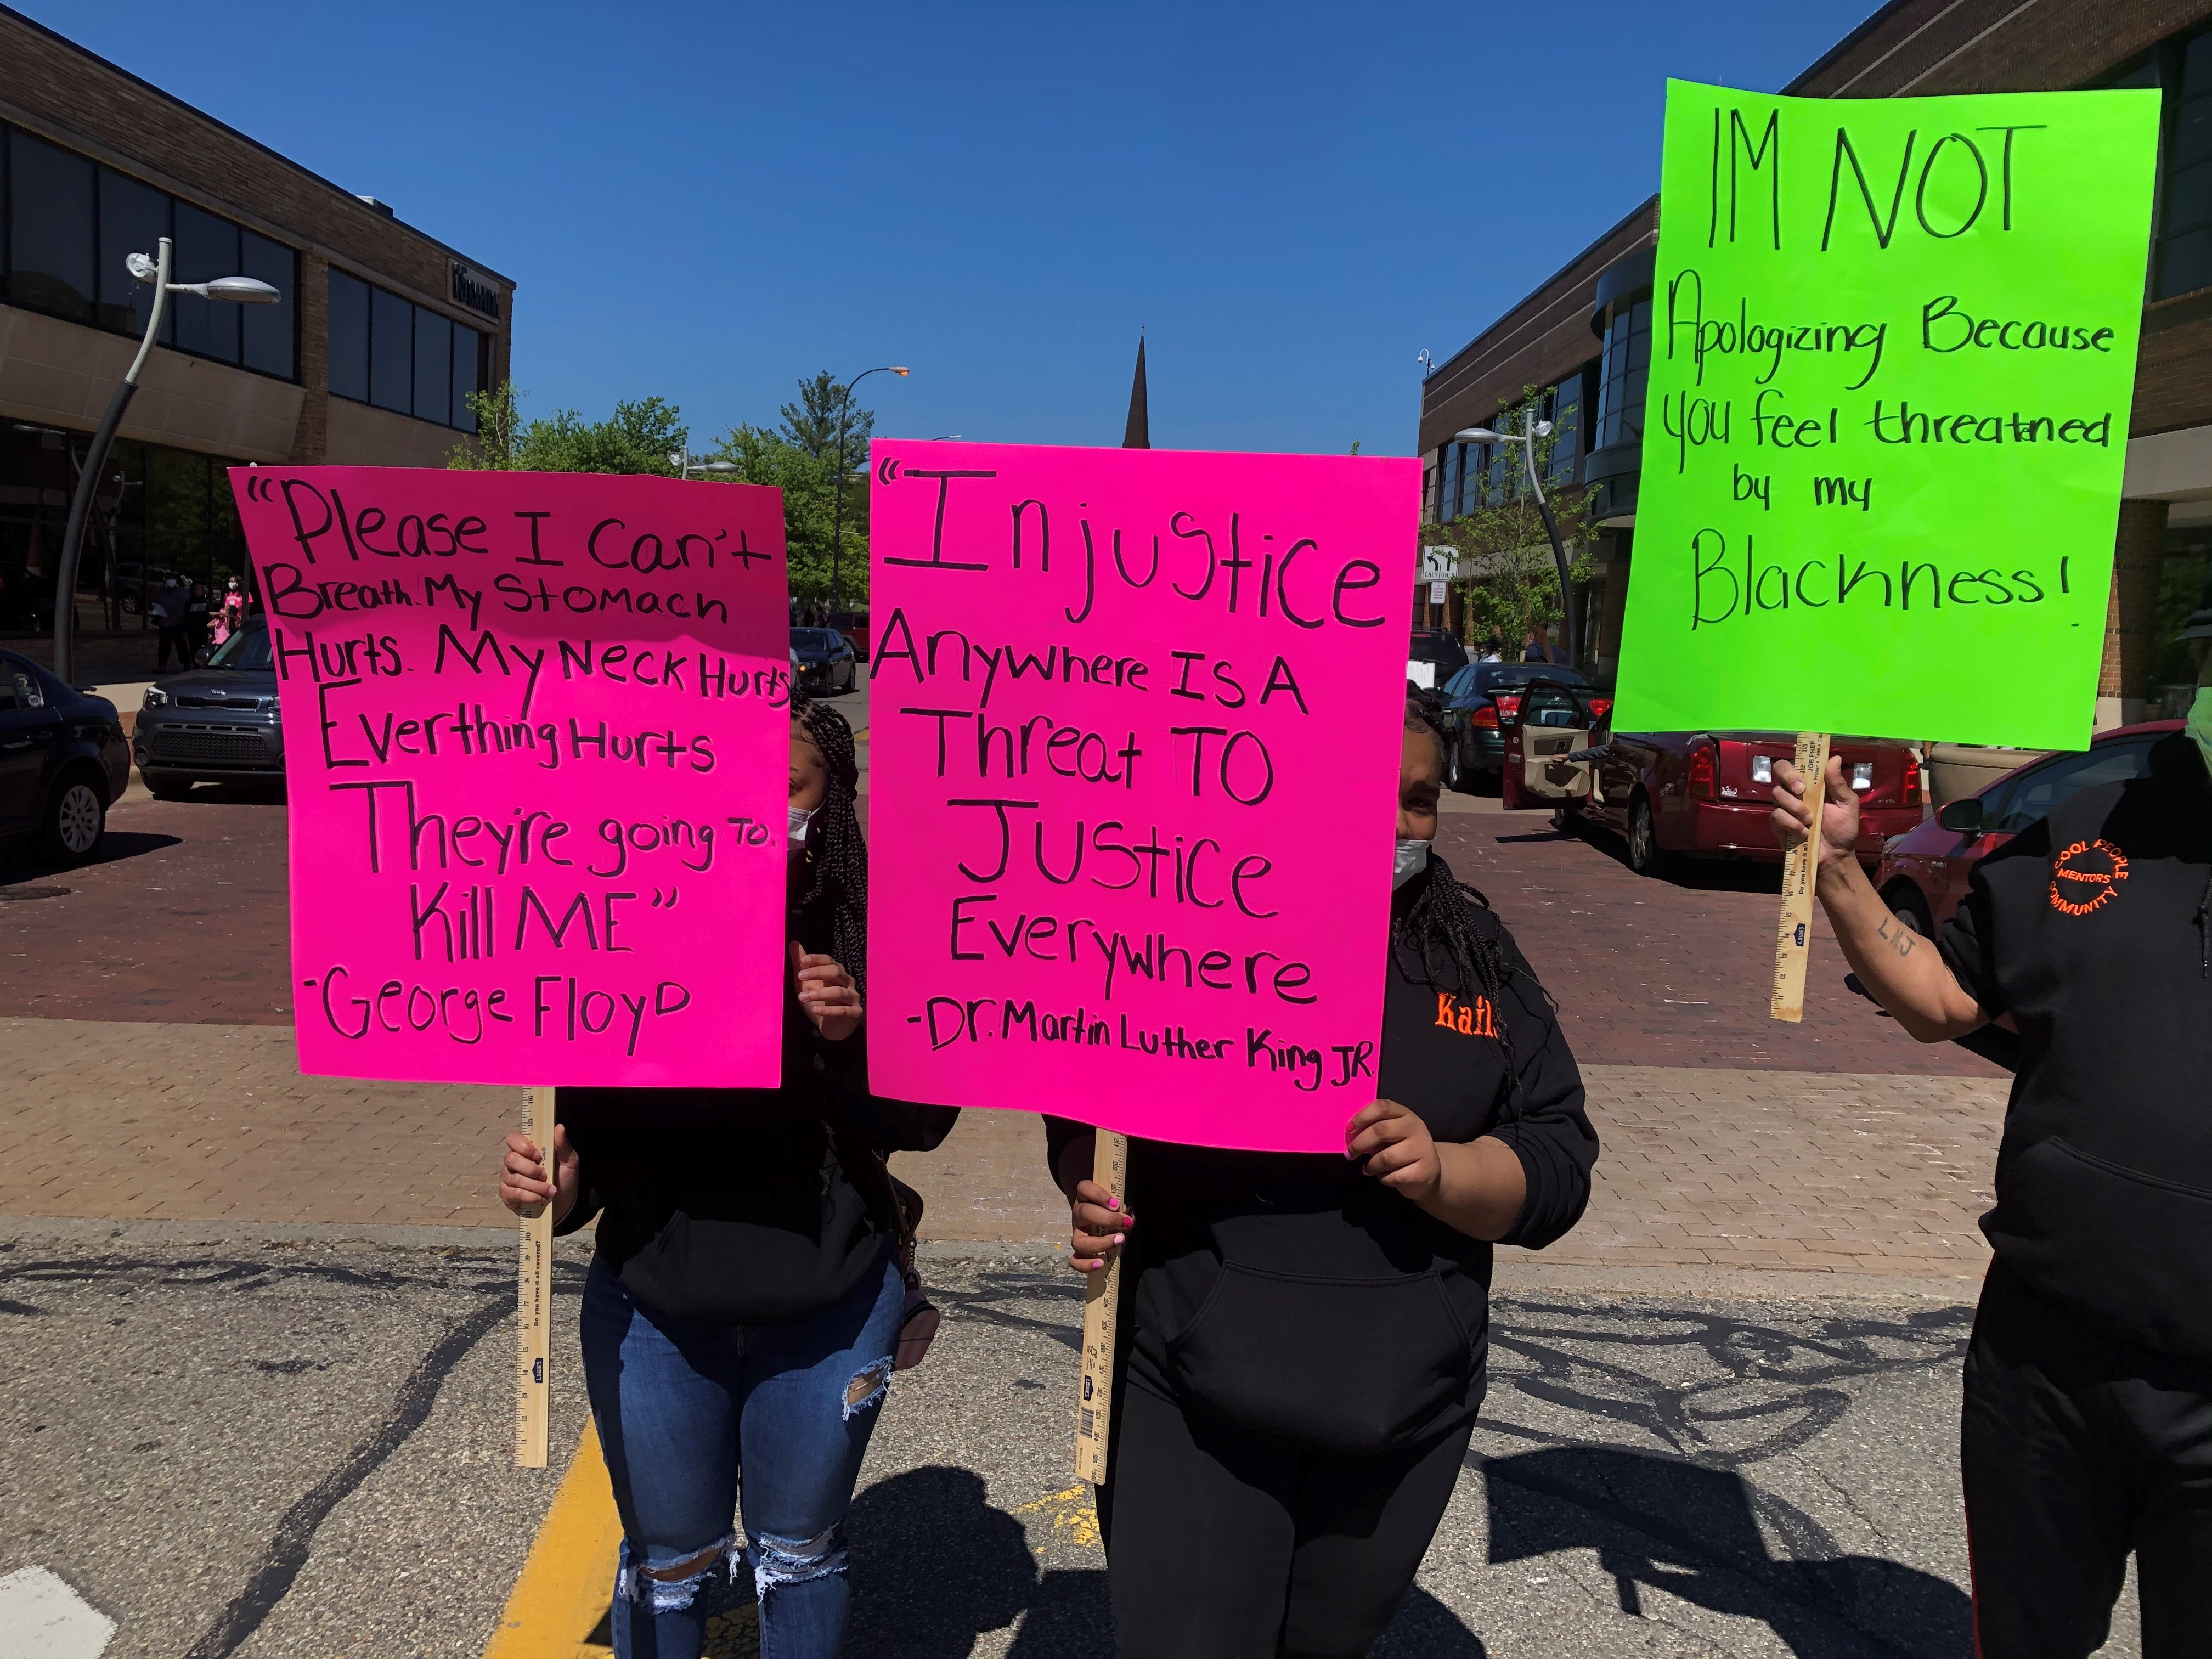 On Sunday, May 31, 2020 people walked throughout the streets of Battle Creek with signs protesting the death of George Floyd.(WWMT/Sam Knef)